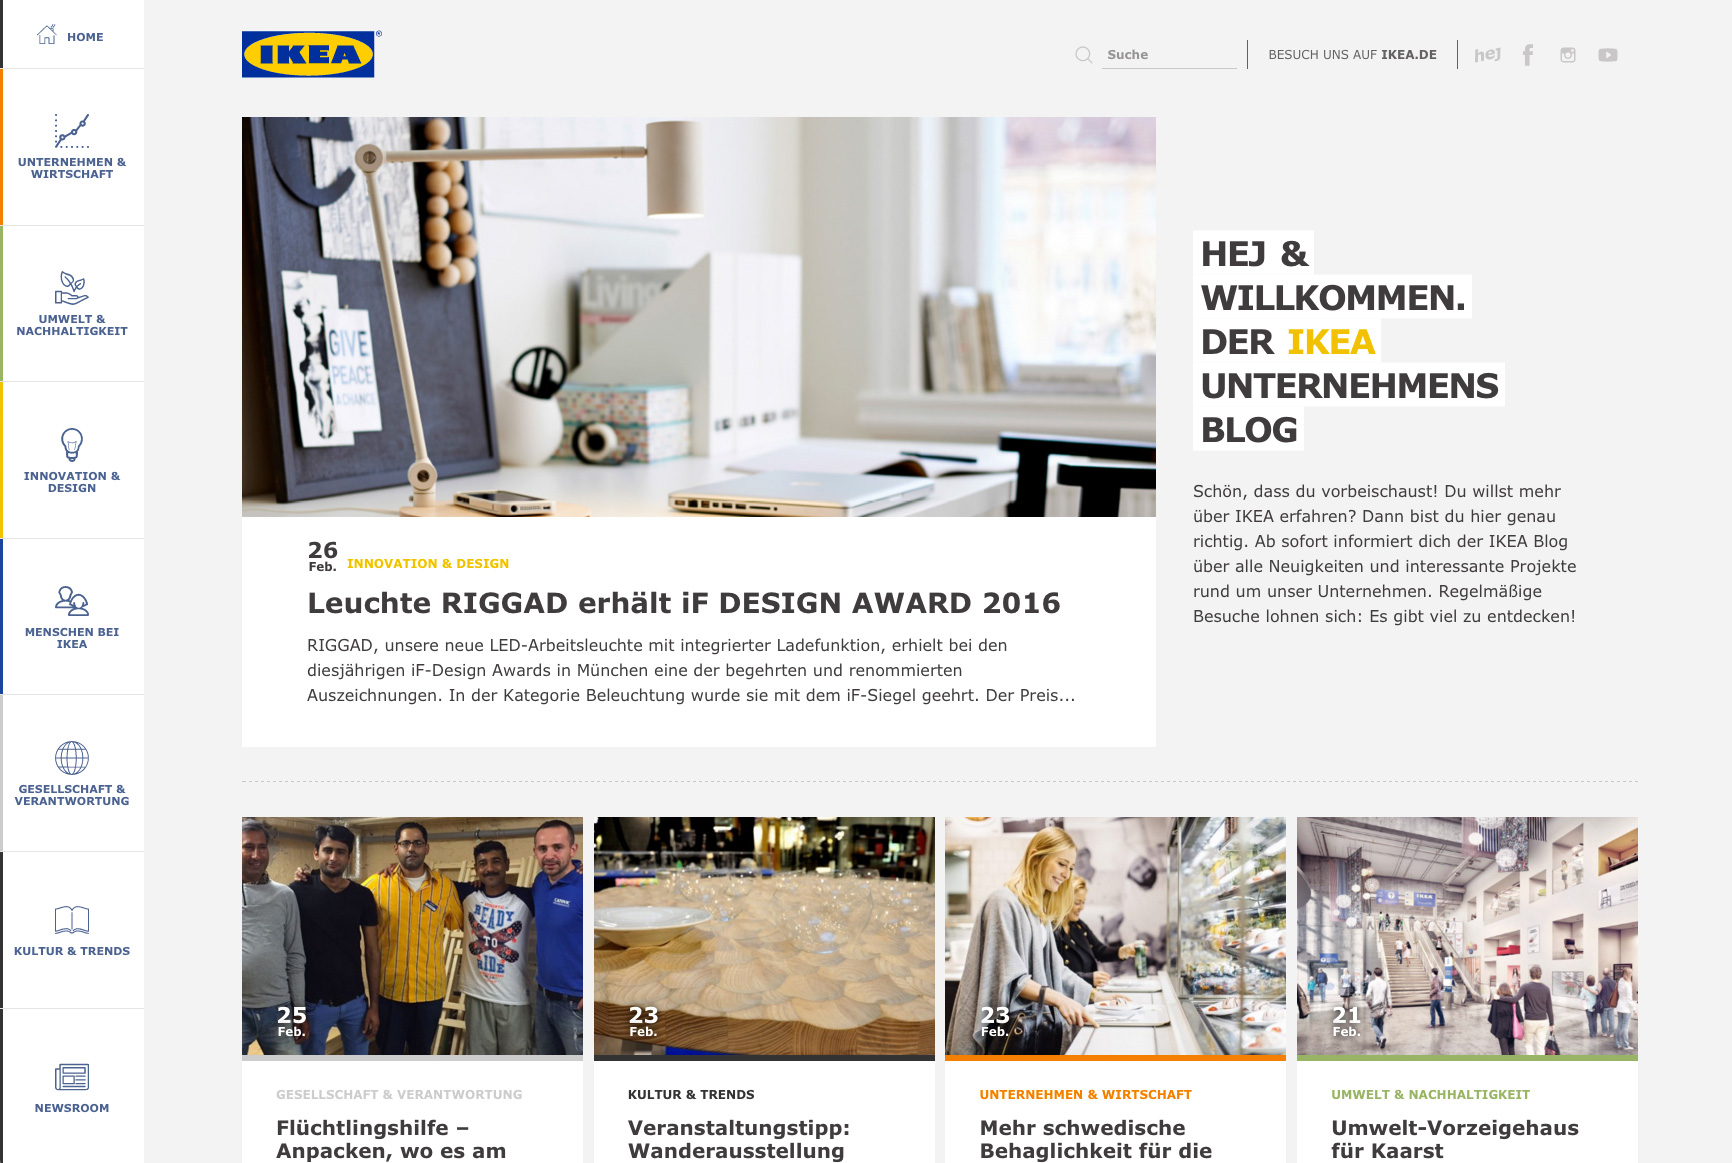 ikea deutschland startet unternehmensblog. Black Bedroom Furniture Sets. Home Design Ideas